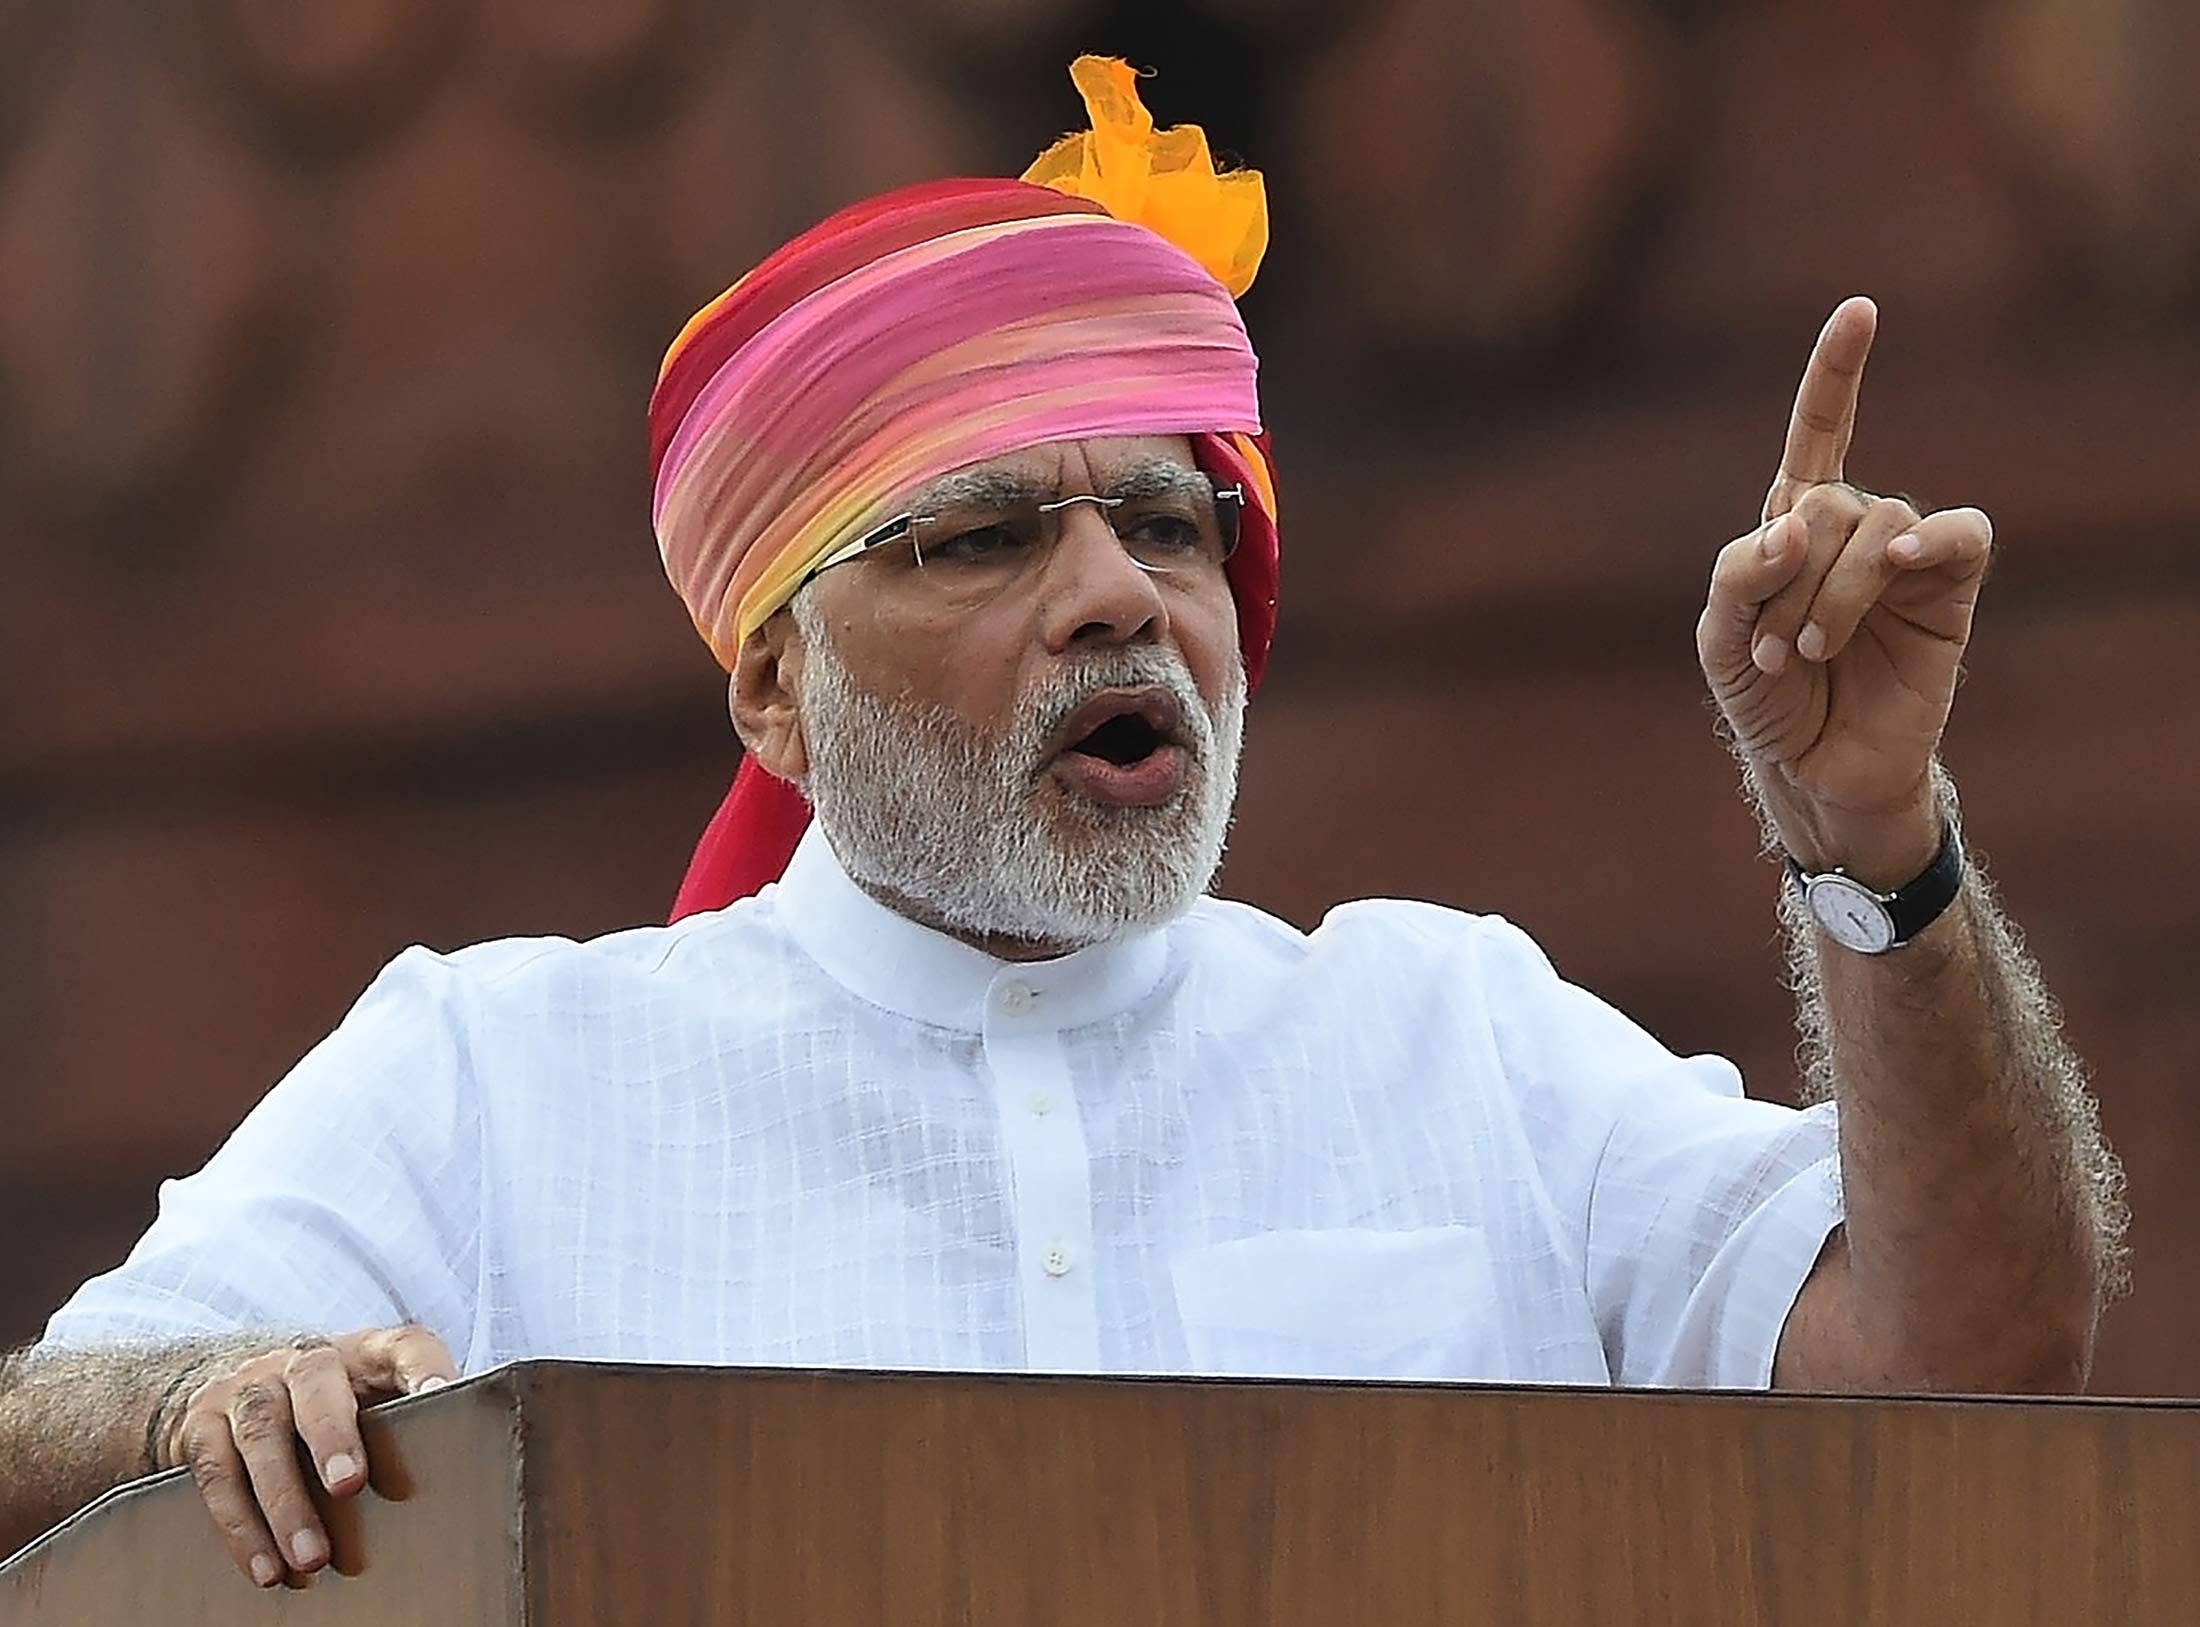 Indian Prime Minister Narendra Modi gestures as he delivers his Independence Day speech from The Red Fort in New Delhi on August 15, 2016. / AFP / PRAKASH SINGH (Photo credit should read PRAKASH SINGH/AFP/Getty Images)